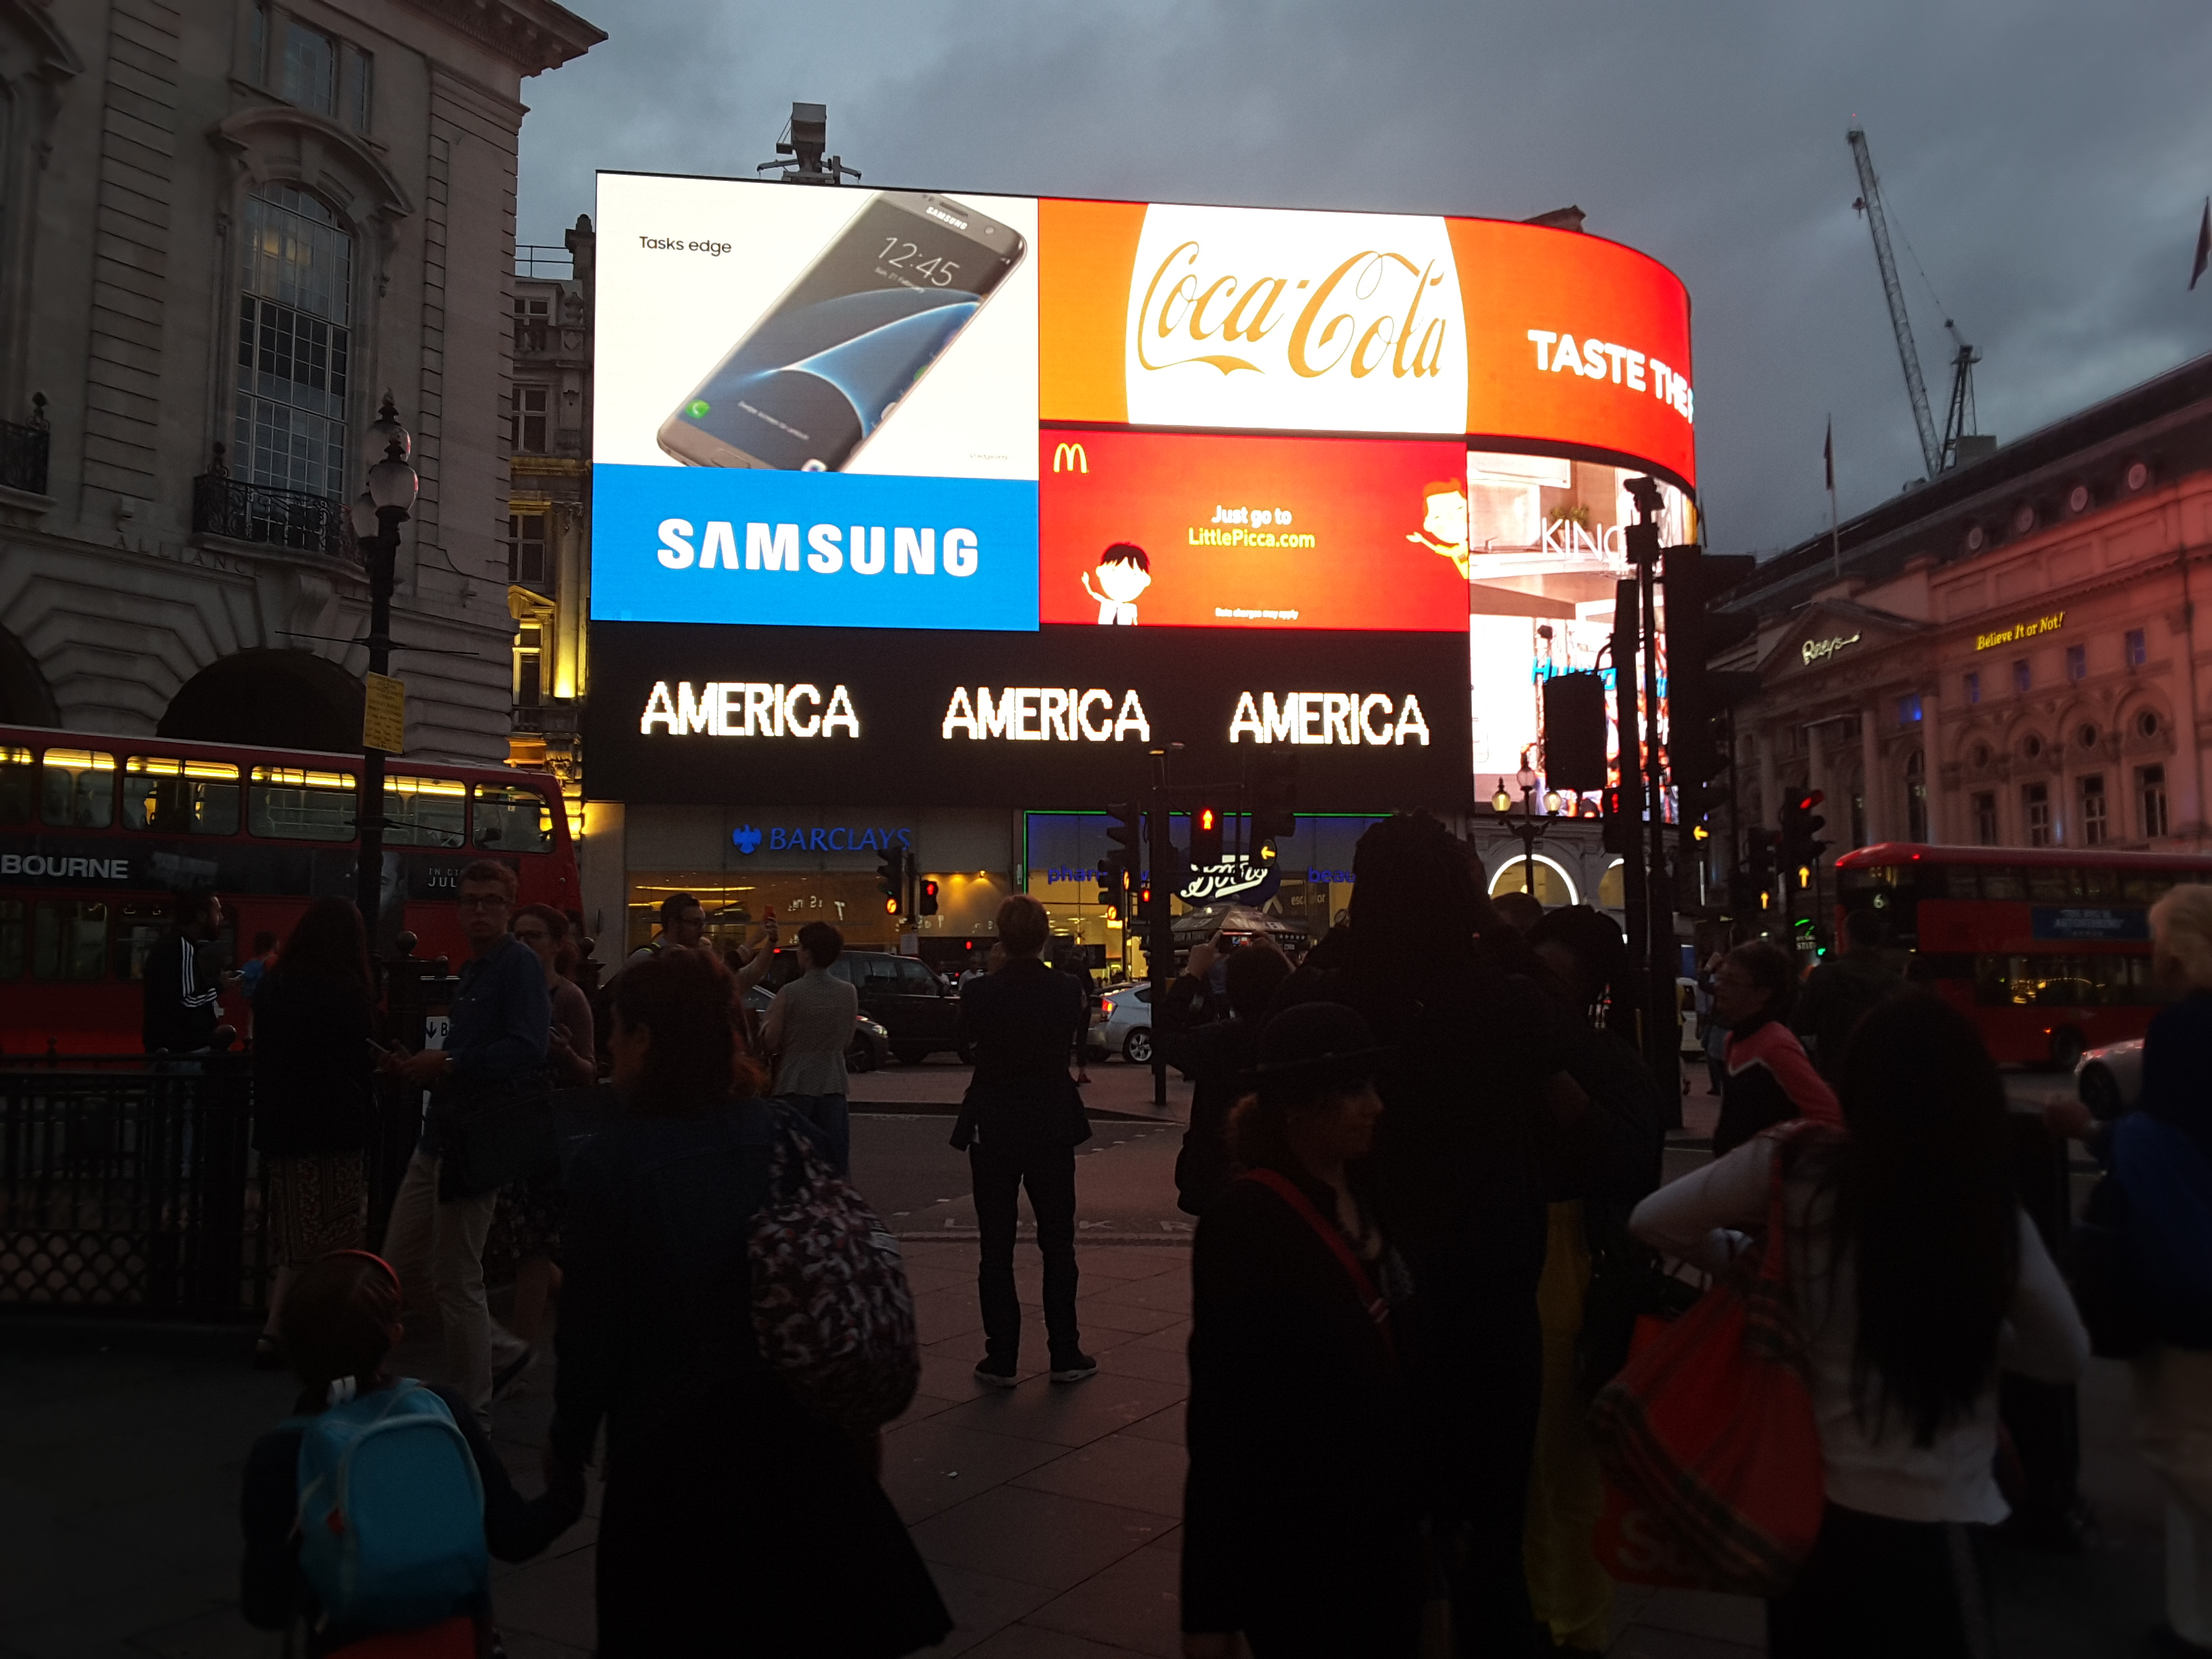 Alfredo jaar a logo for america londra piccadilly for Time square londra